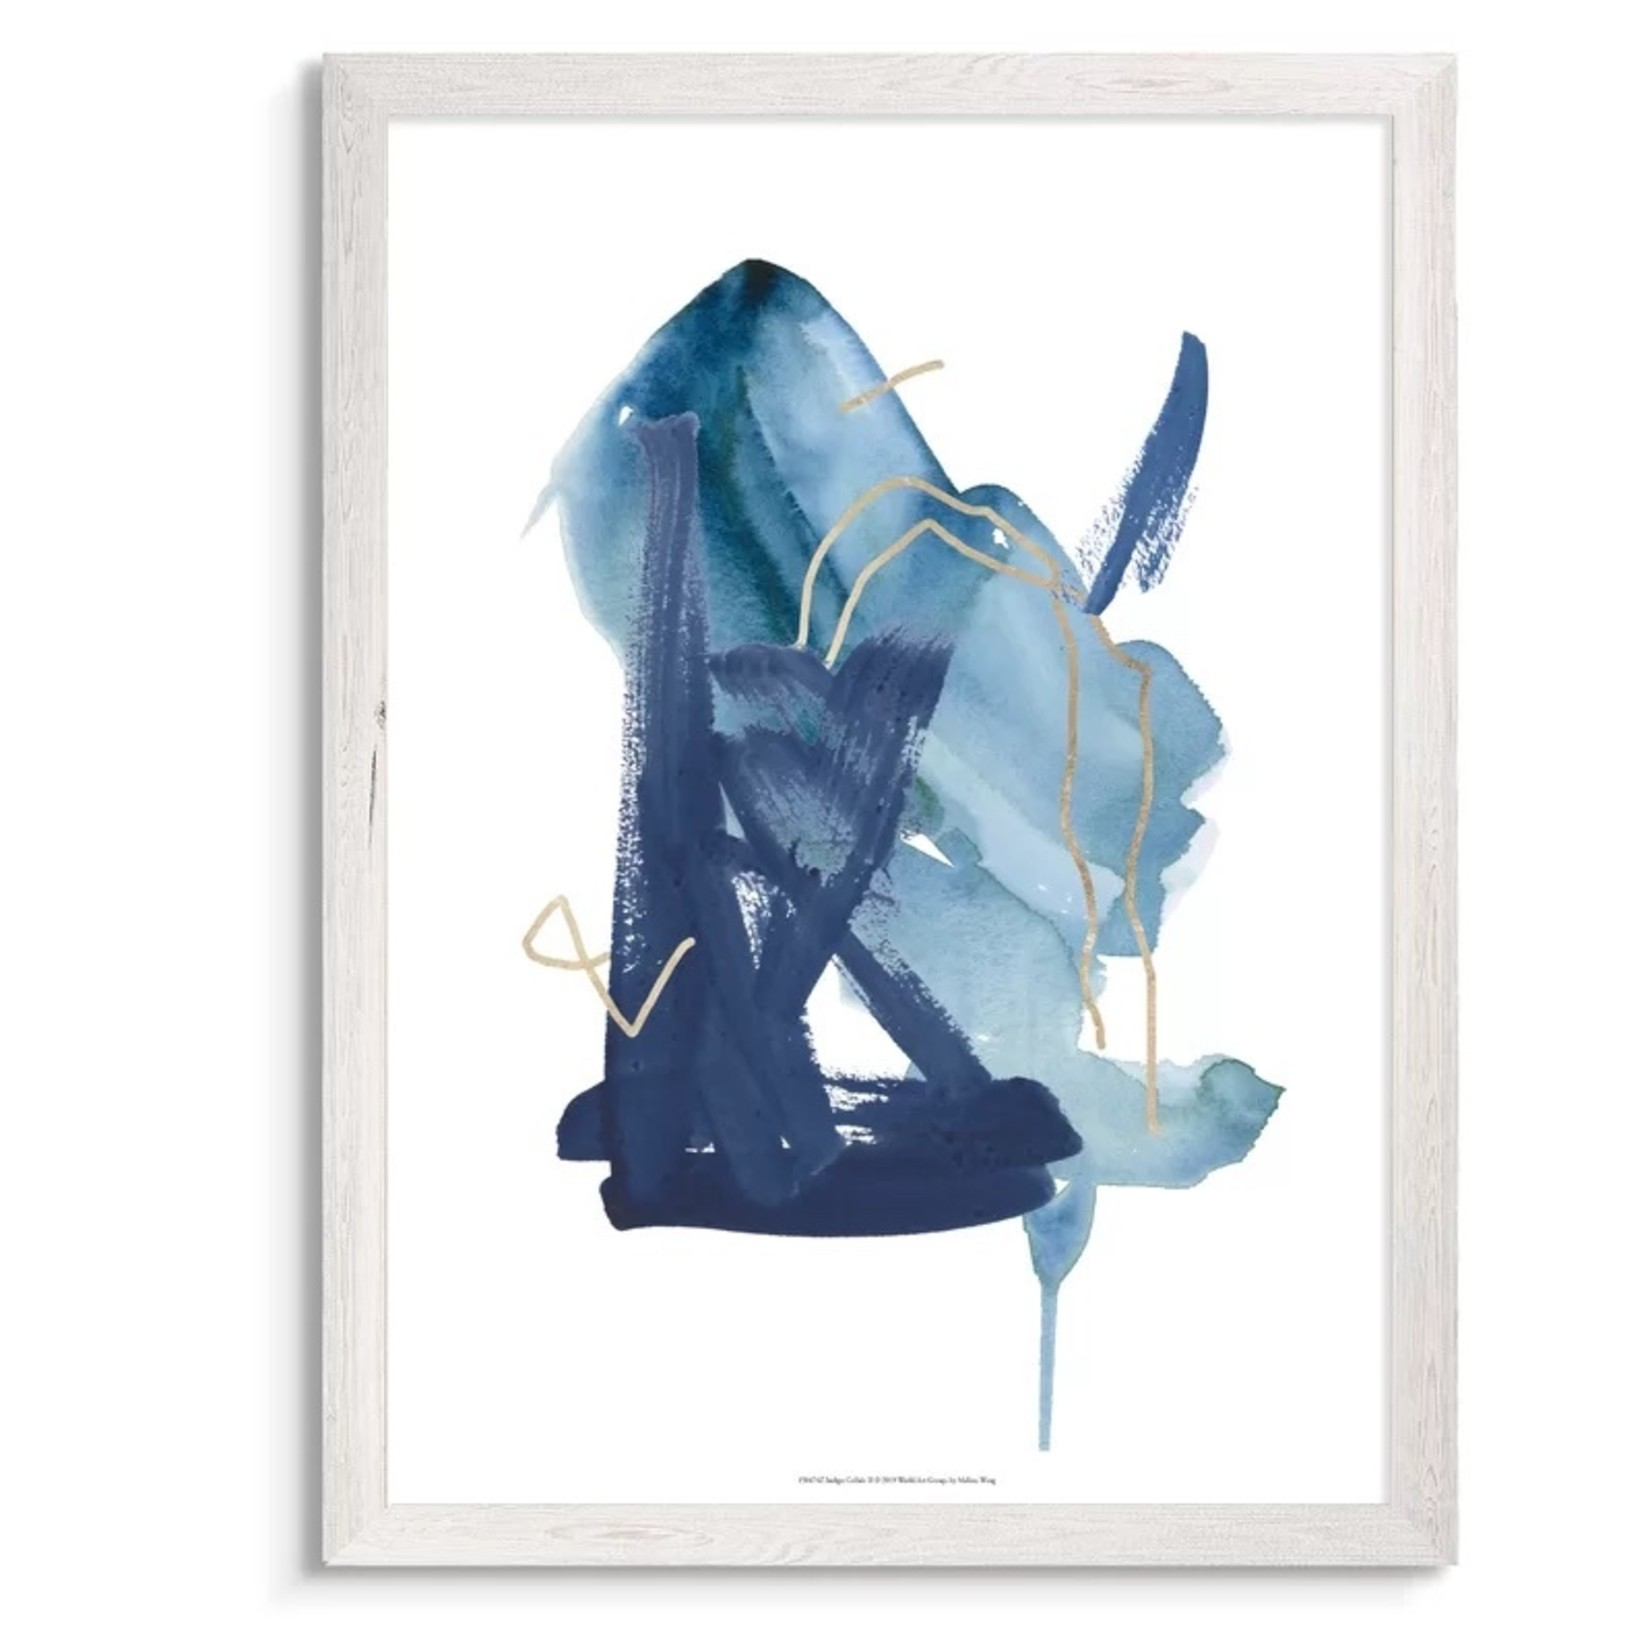 *Indigo Collide II' by Paul Cezanne - Picture Frame Painting Print - 32 X 24